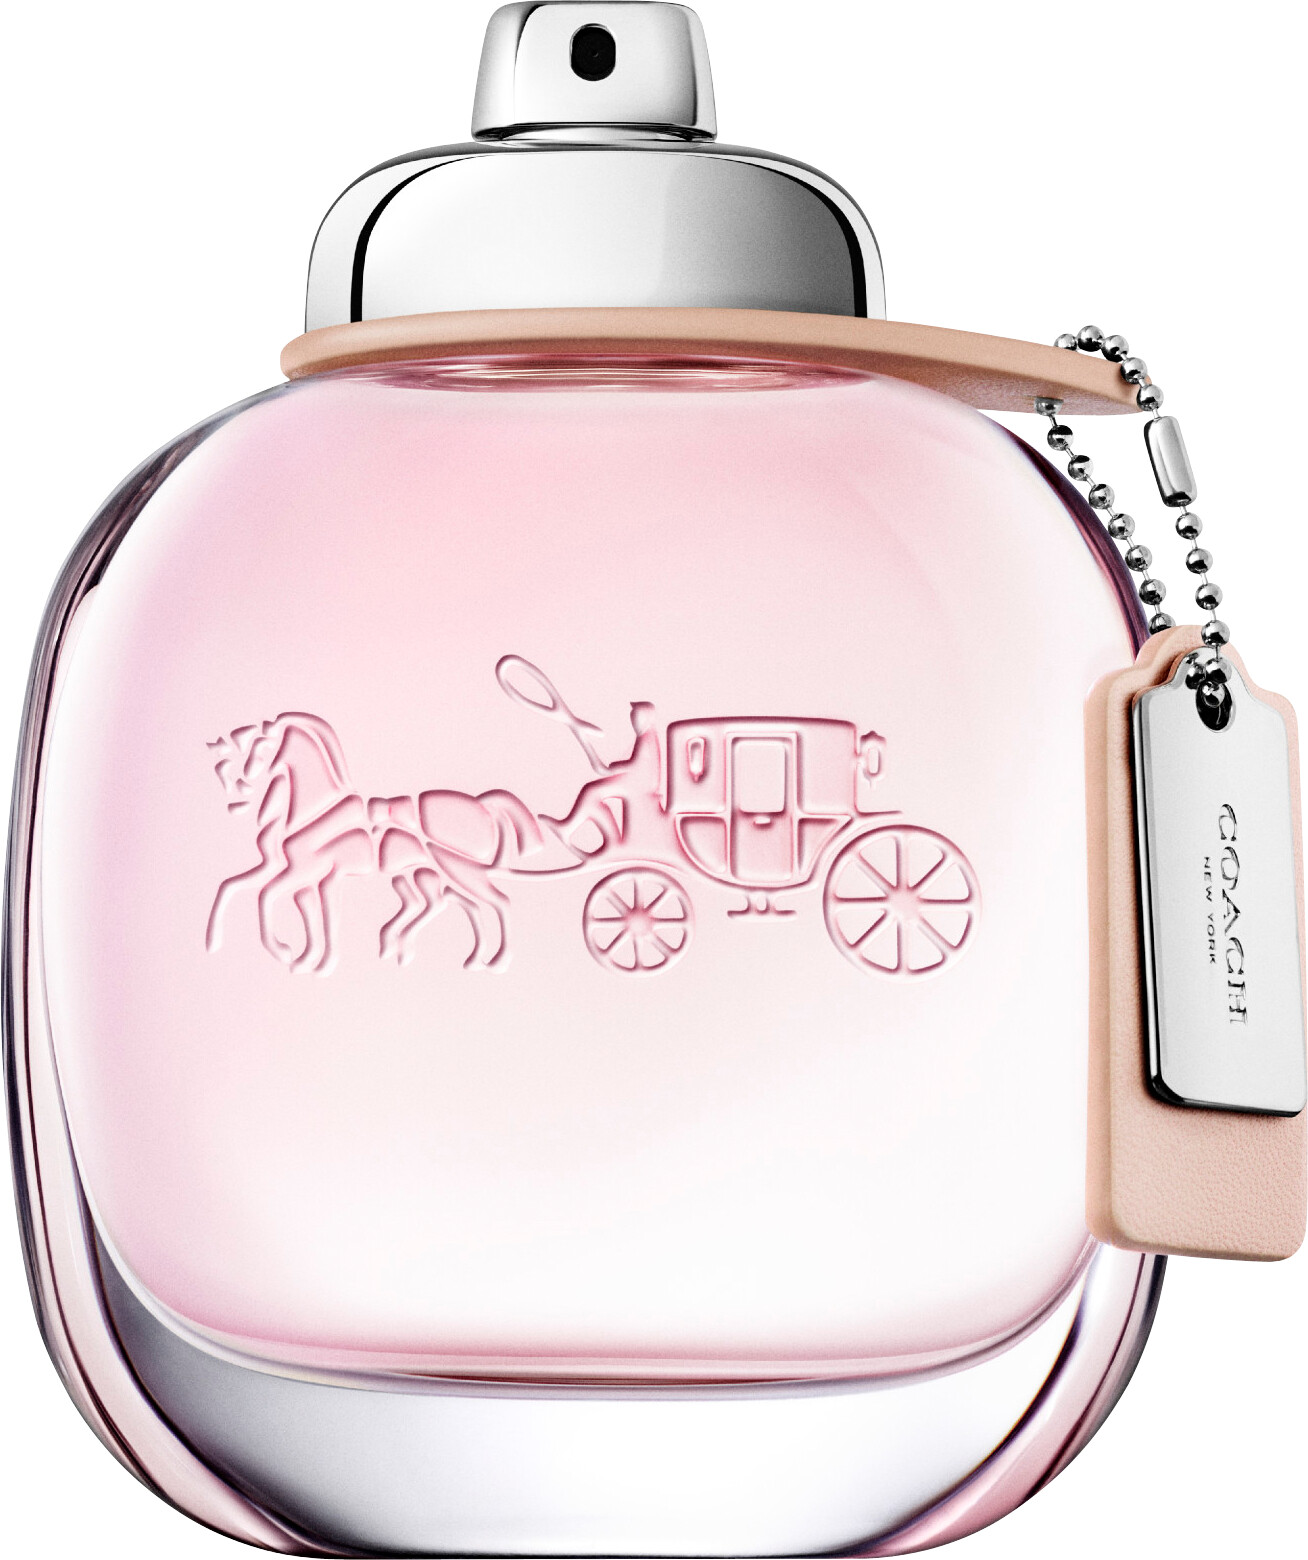 Photo De Toilette Coach Eau De Toilette Spray